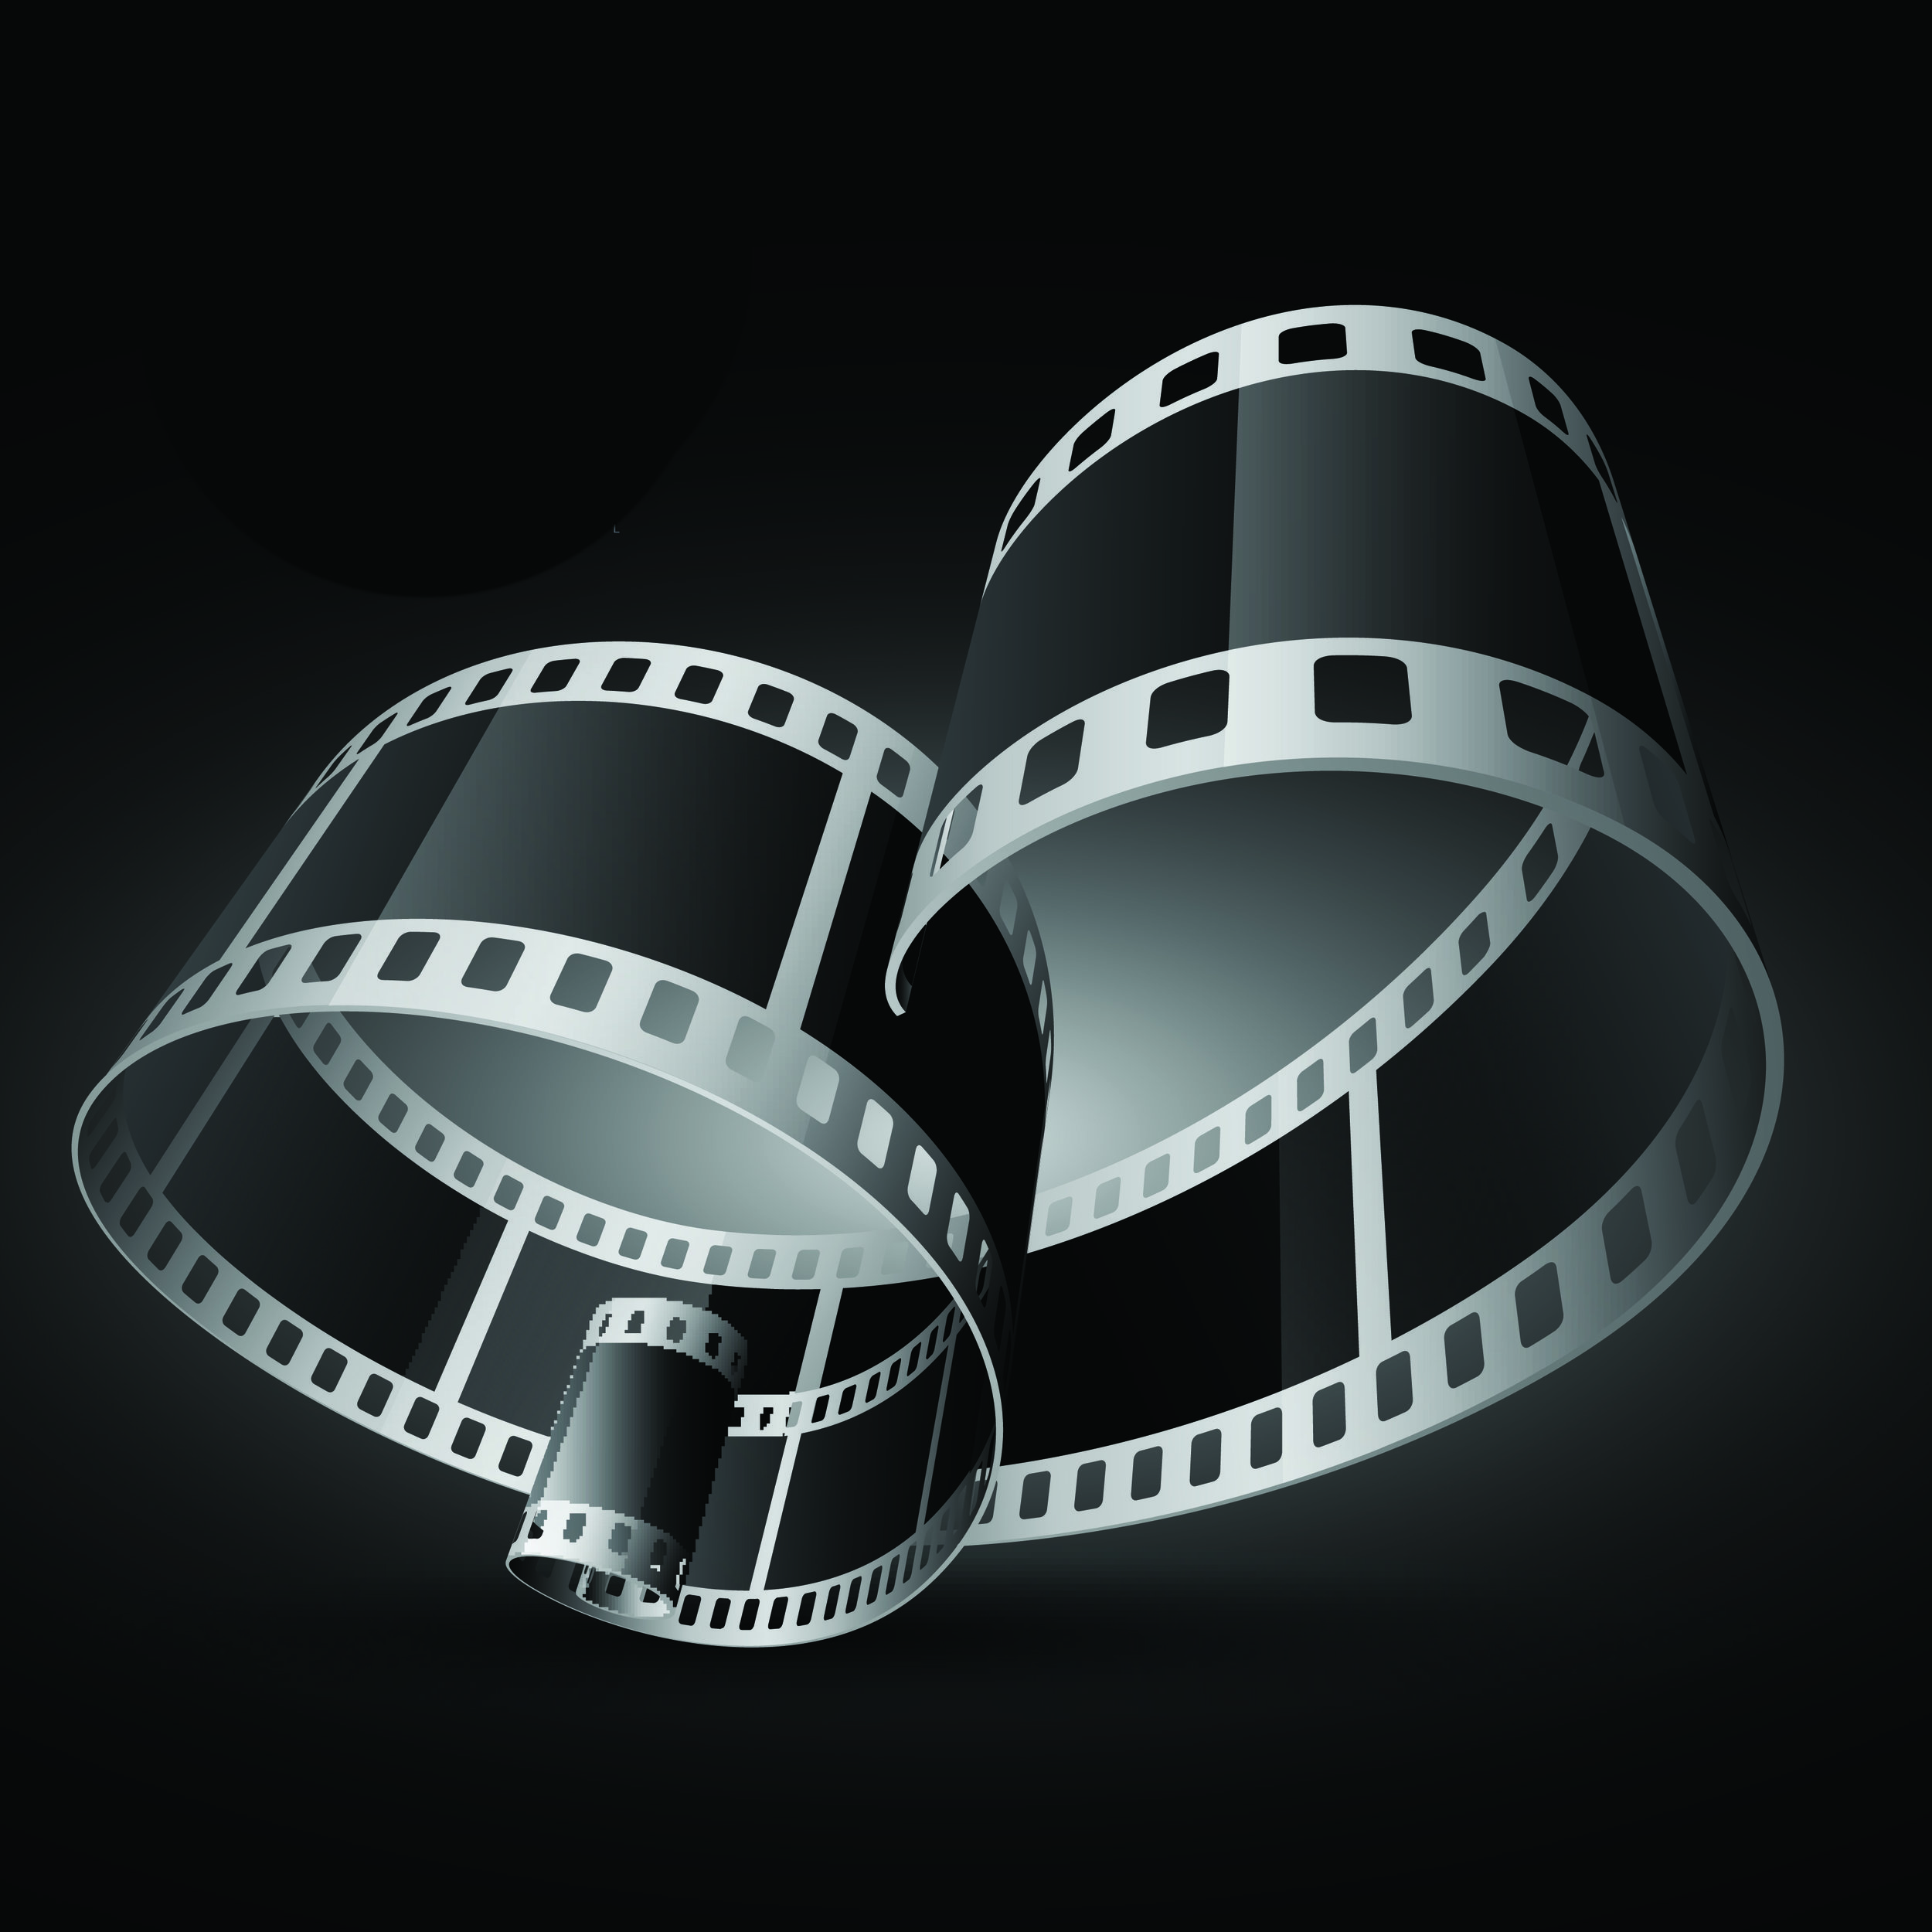 black_and_white_film_clip_art_3d_1_1.jpg